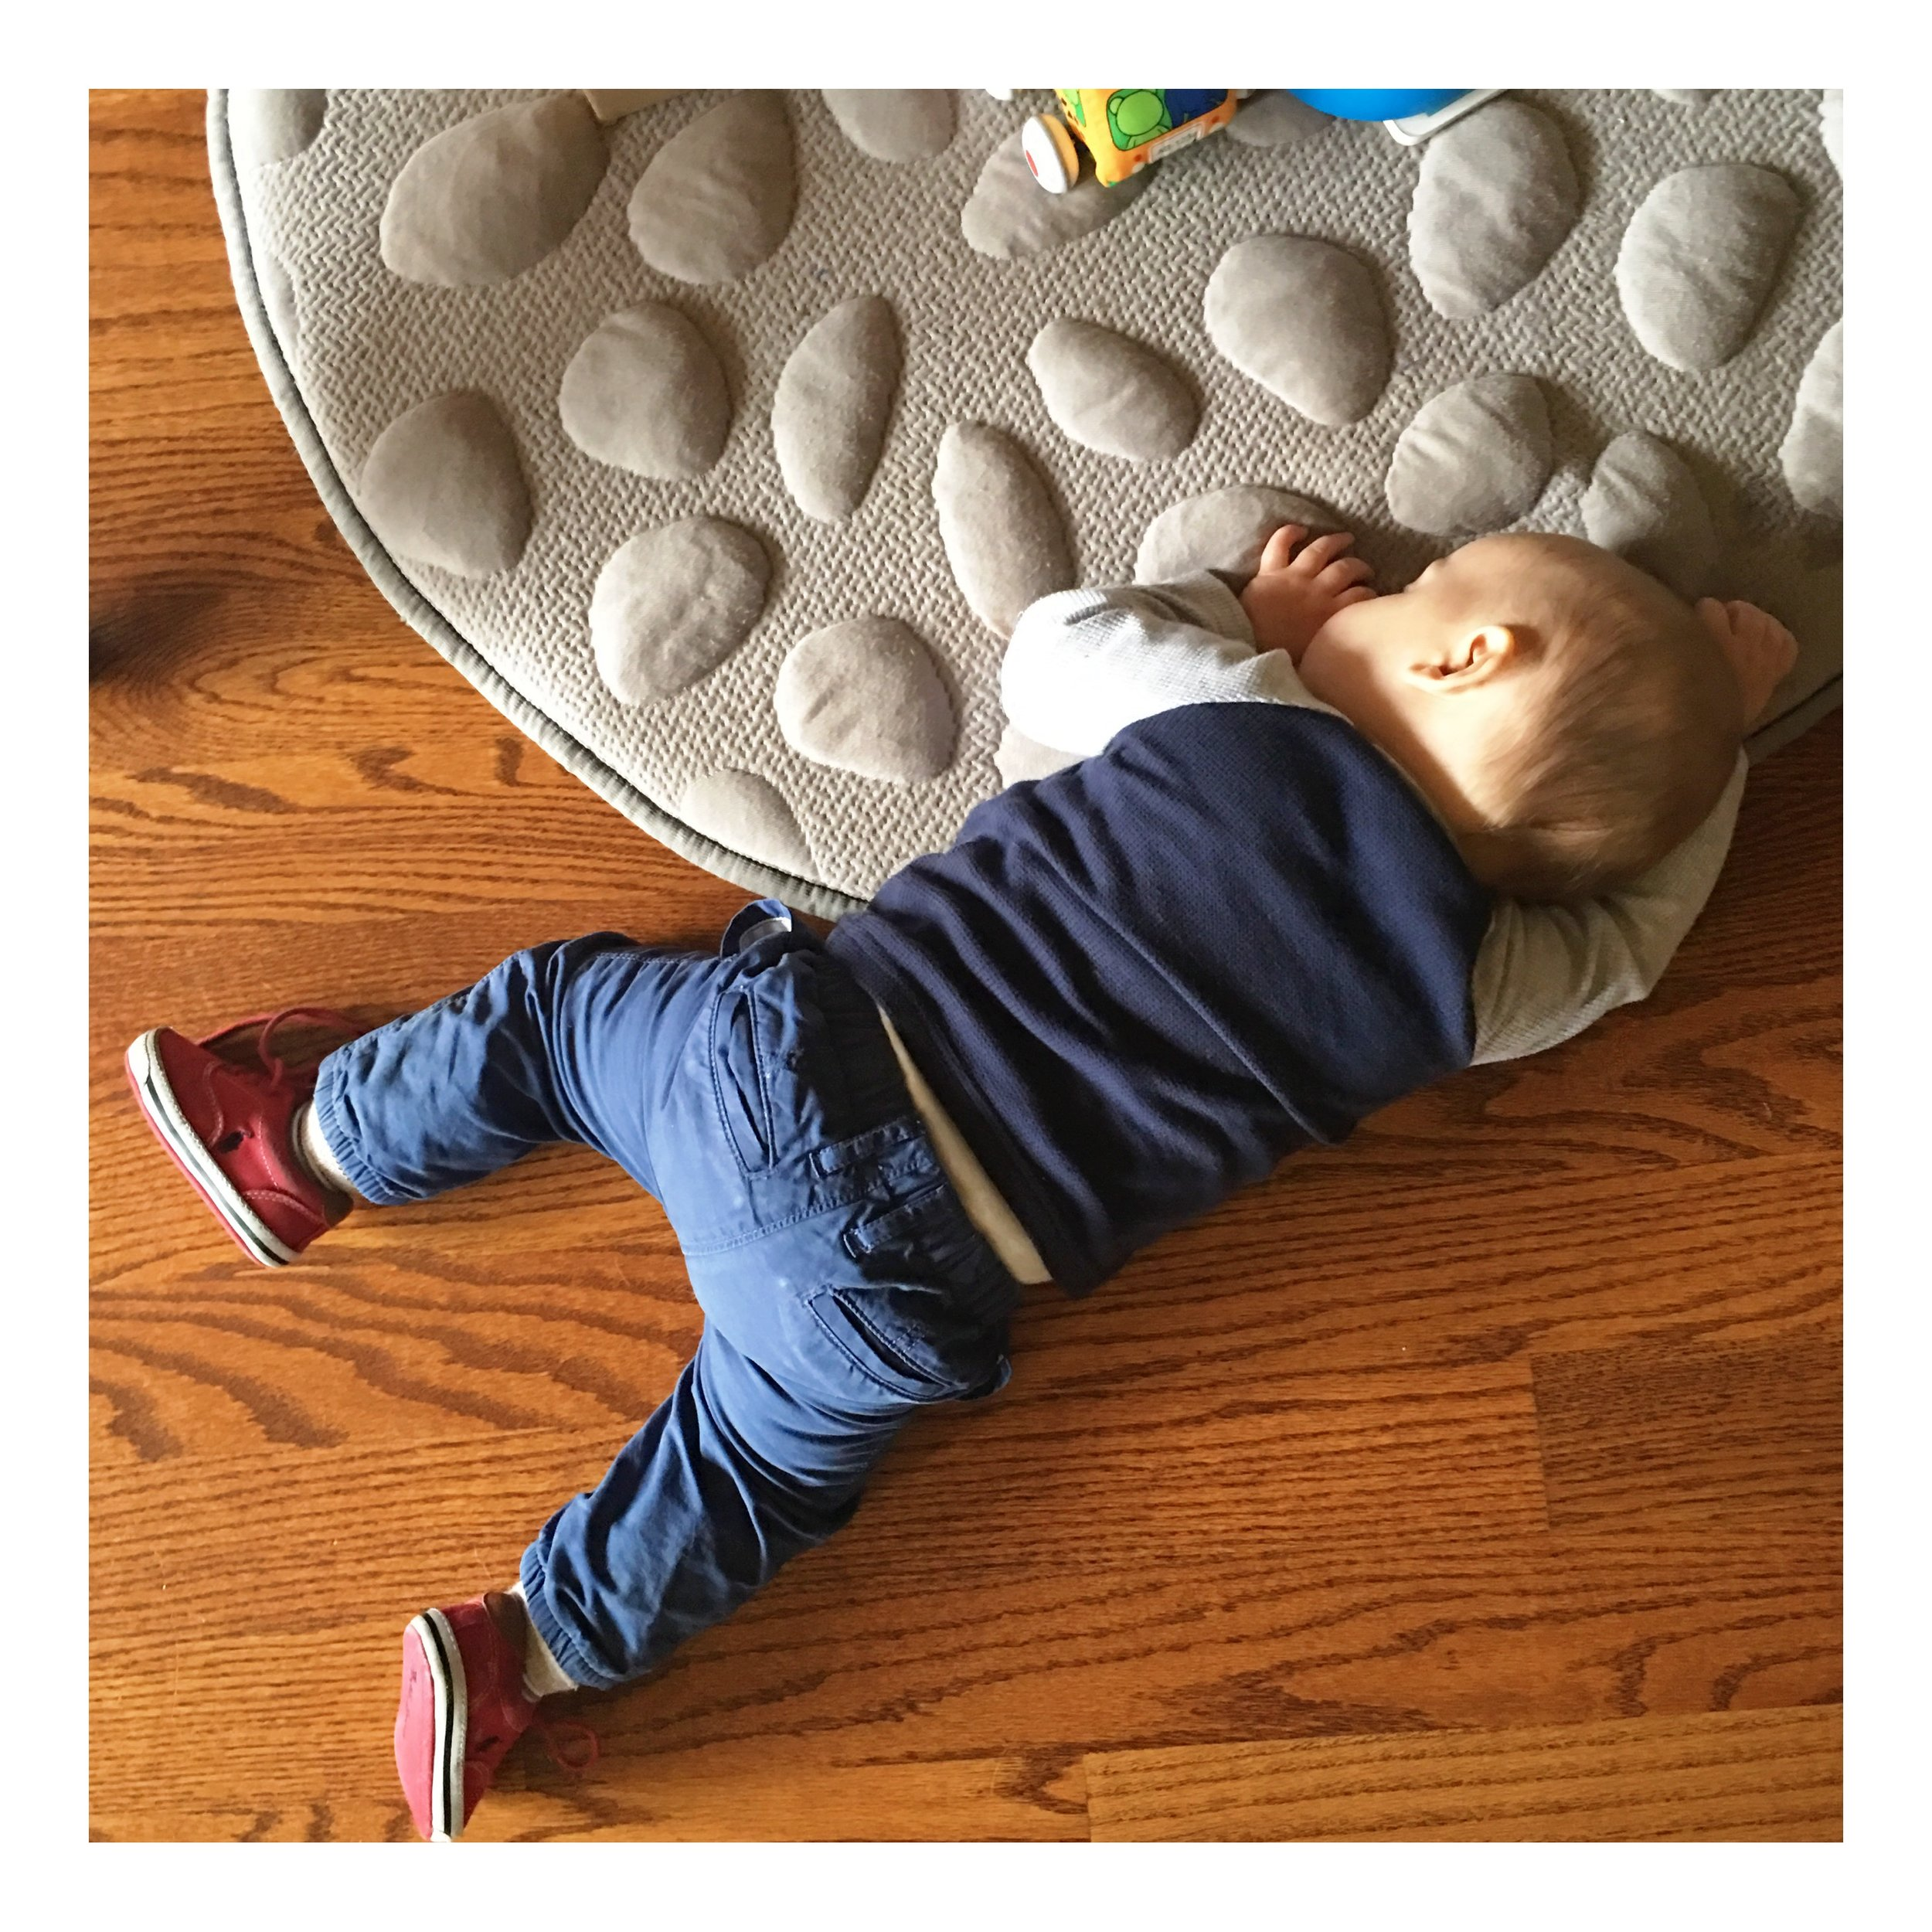 My son at eleven months calling it quits on the floor.